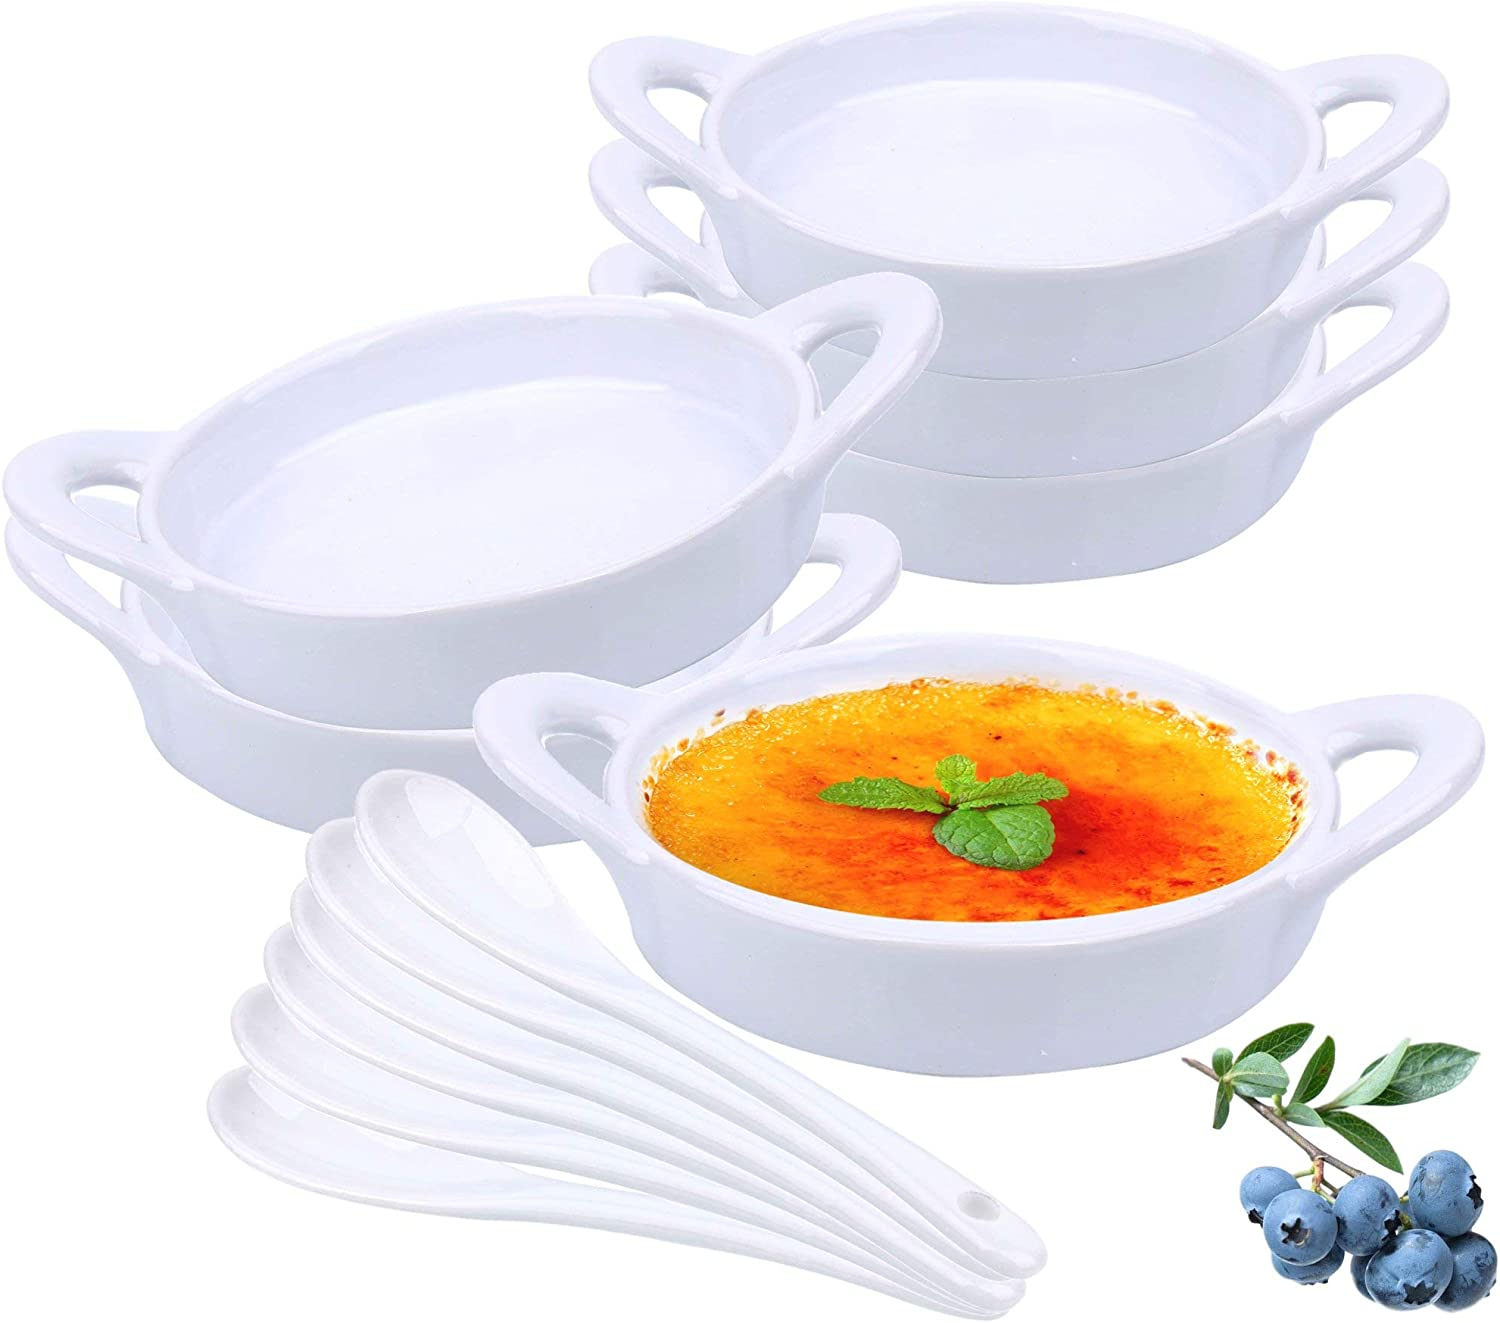 Souffle Dish Ramekins for Baking – 5 Ounce (Set of 6, White with 6 Extra Spoons) 5 Oz, Half Cup Ceramic Oven Safe Round Ramekin Bowls for Desserts Puddings Souffle Condiments Sauces Dips Dressings Desserts Puddings Custards Cups